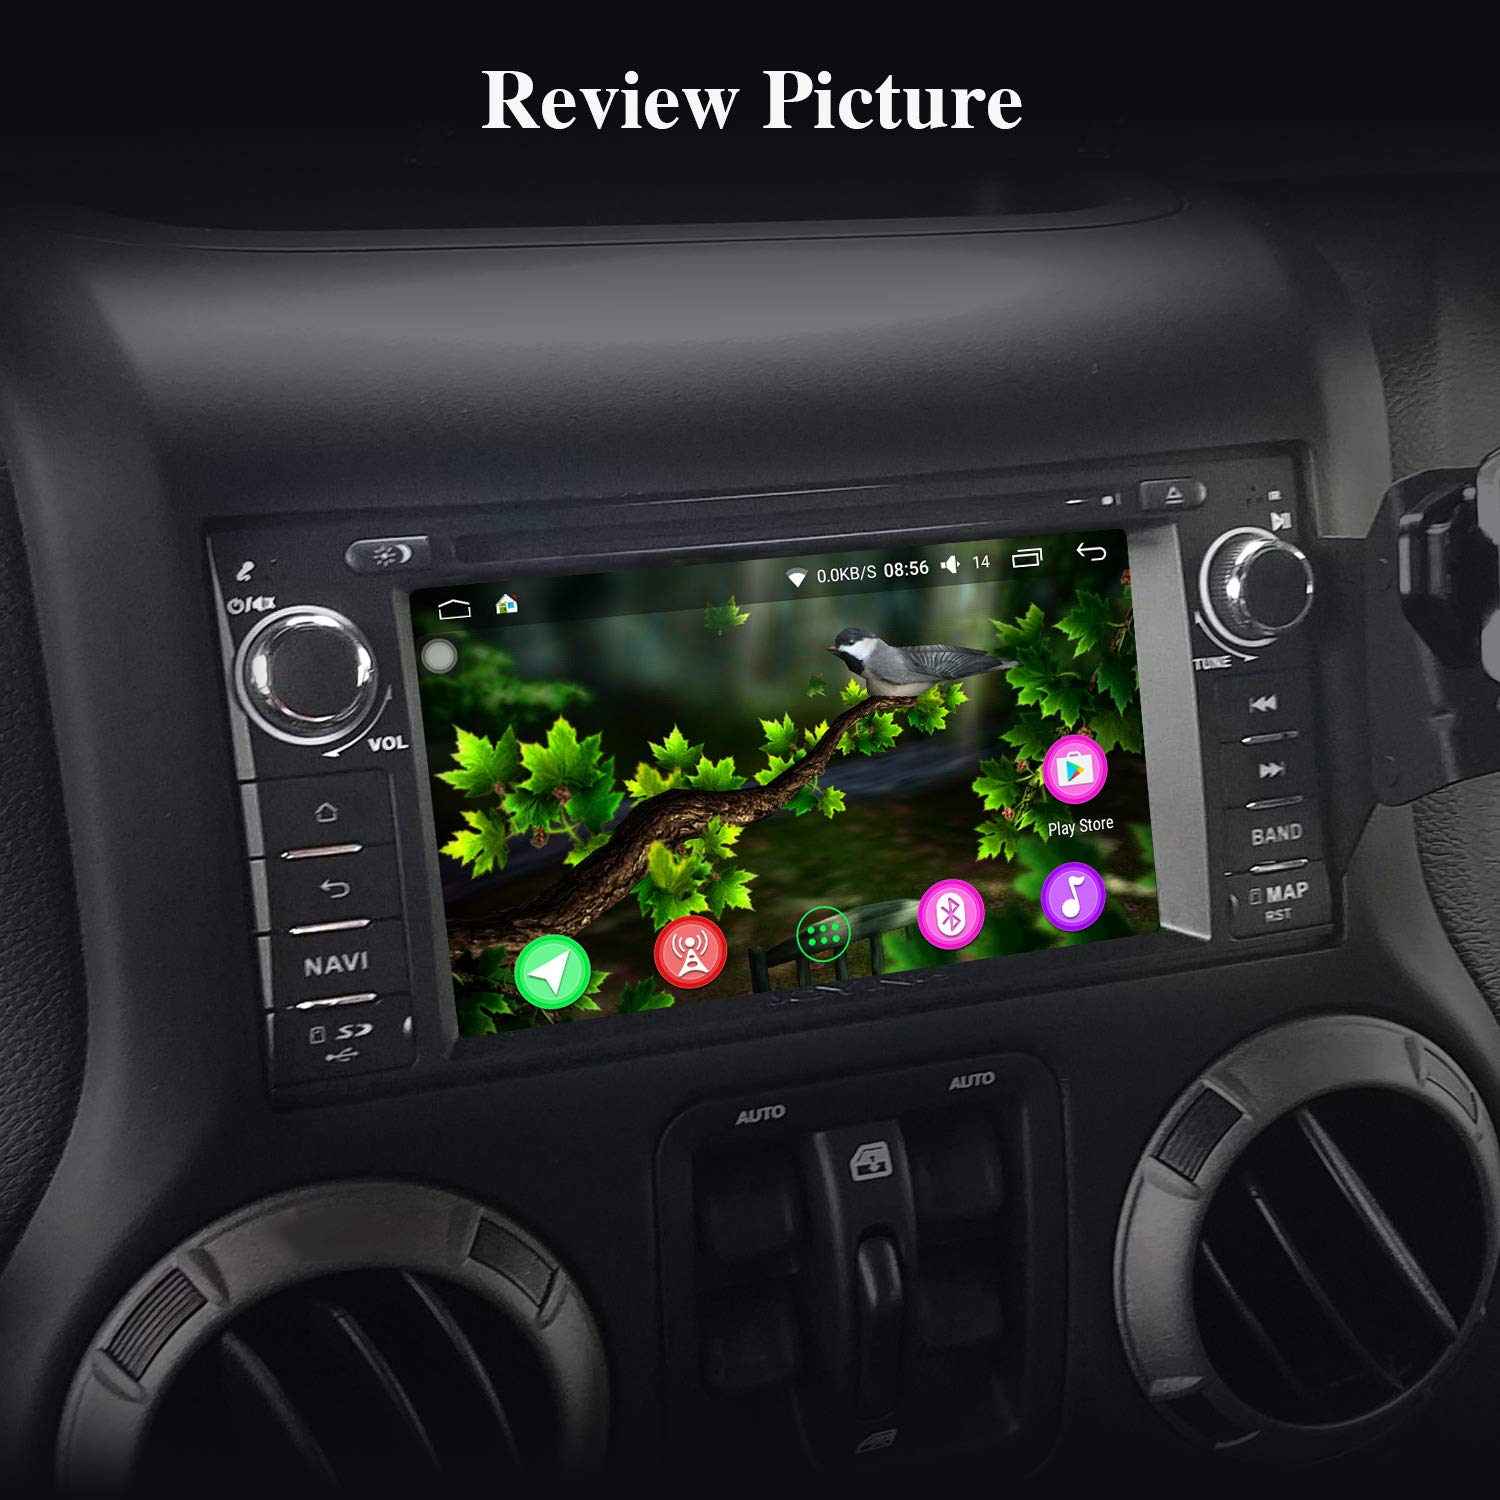 Car Stereo For Jeep Joying 62 Single Din Head Details About Chrysler Dodge Radio Wiring Harness Headunit Unit Android 81 4gb Ram 64gb Rom Challenger Wrangler Jk Cherokee